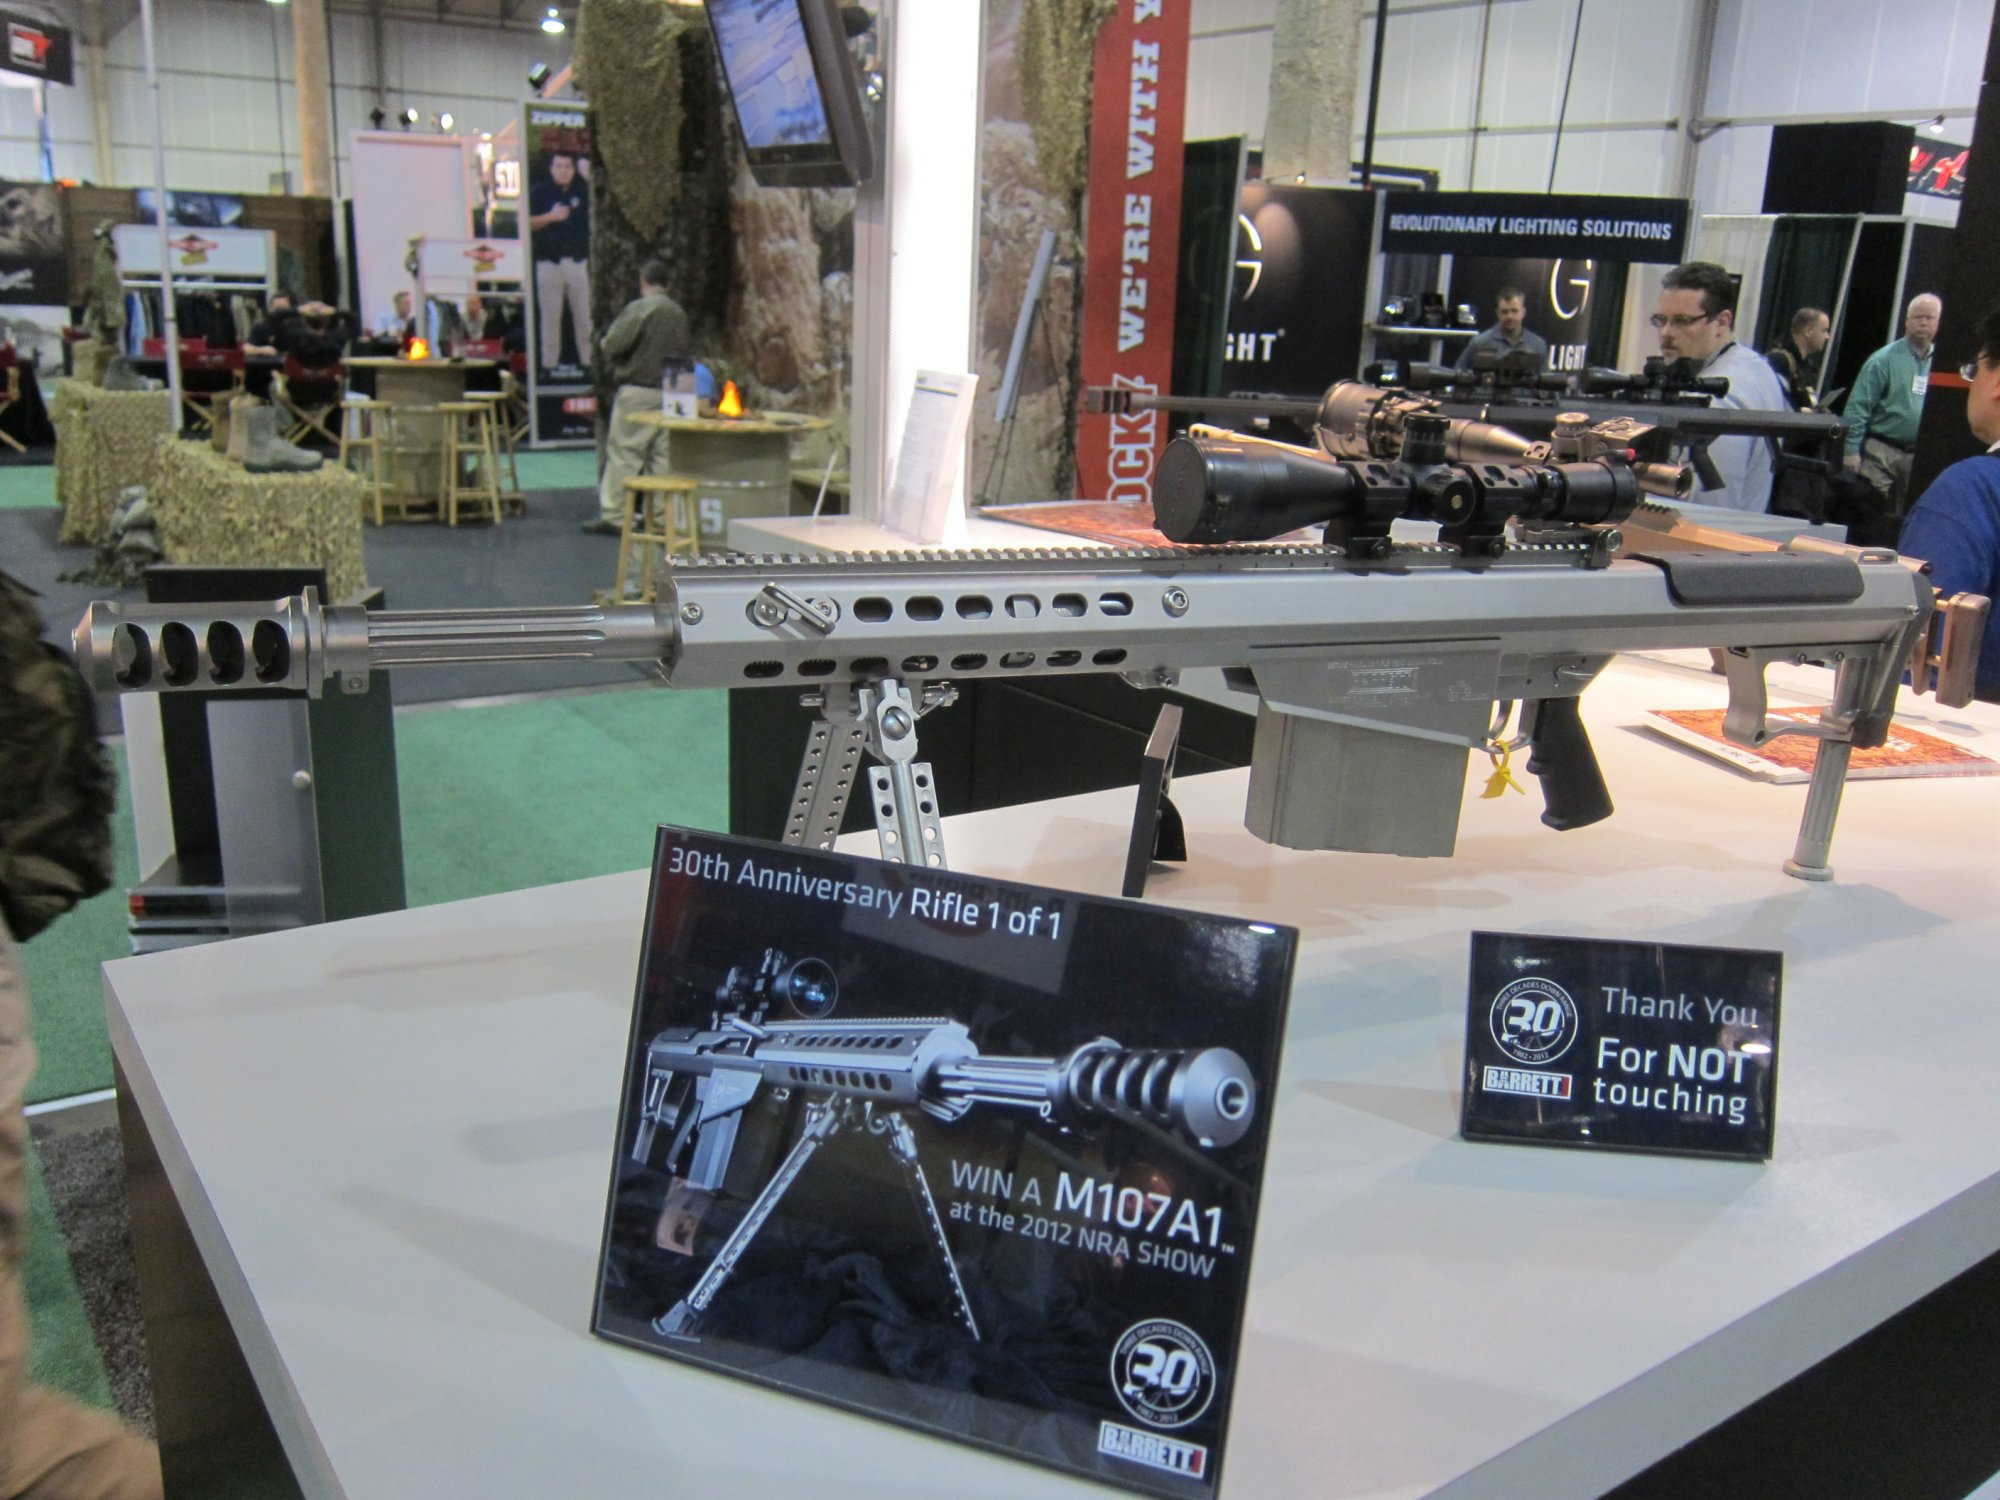 Barrett M107A1 .50 BMG Anti Materiel Rifle 30th Anniversary Nickel Teflon Coating SHOT Show 2012 DefenseReview.com DR 1 Barrett M107A1 30th Anniversary Edition Semi Auto .50 BMG Anti Materiel Rifle with Robar NP3 Nickel Teflon Coating Inside and Out! (Video!)